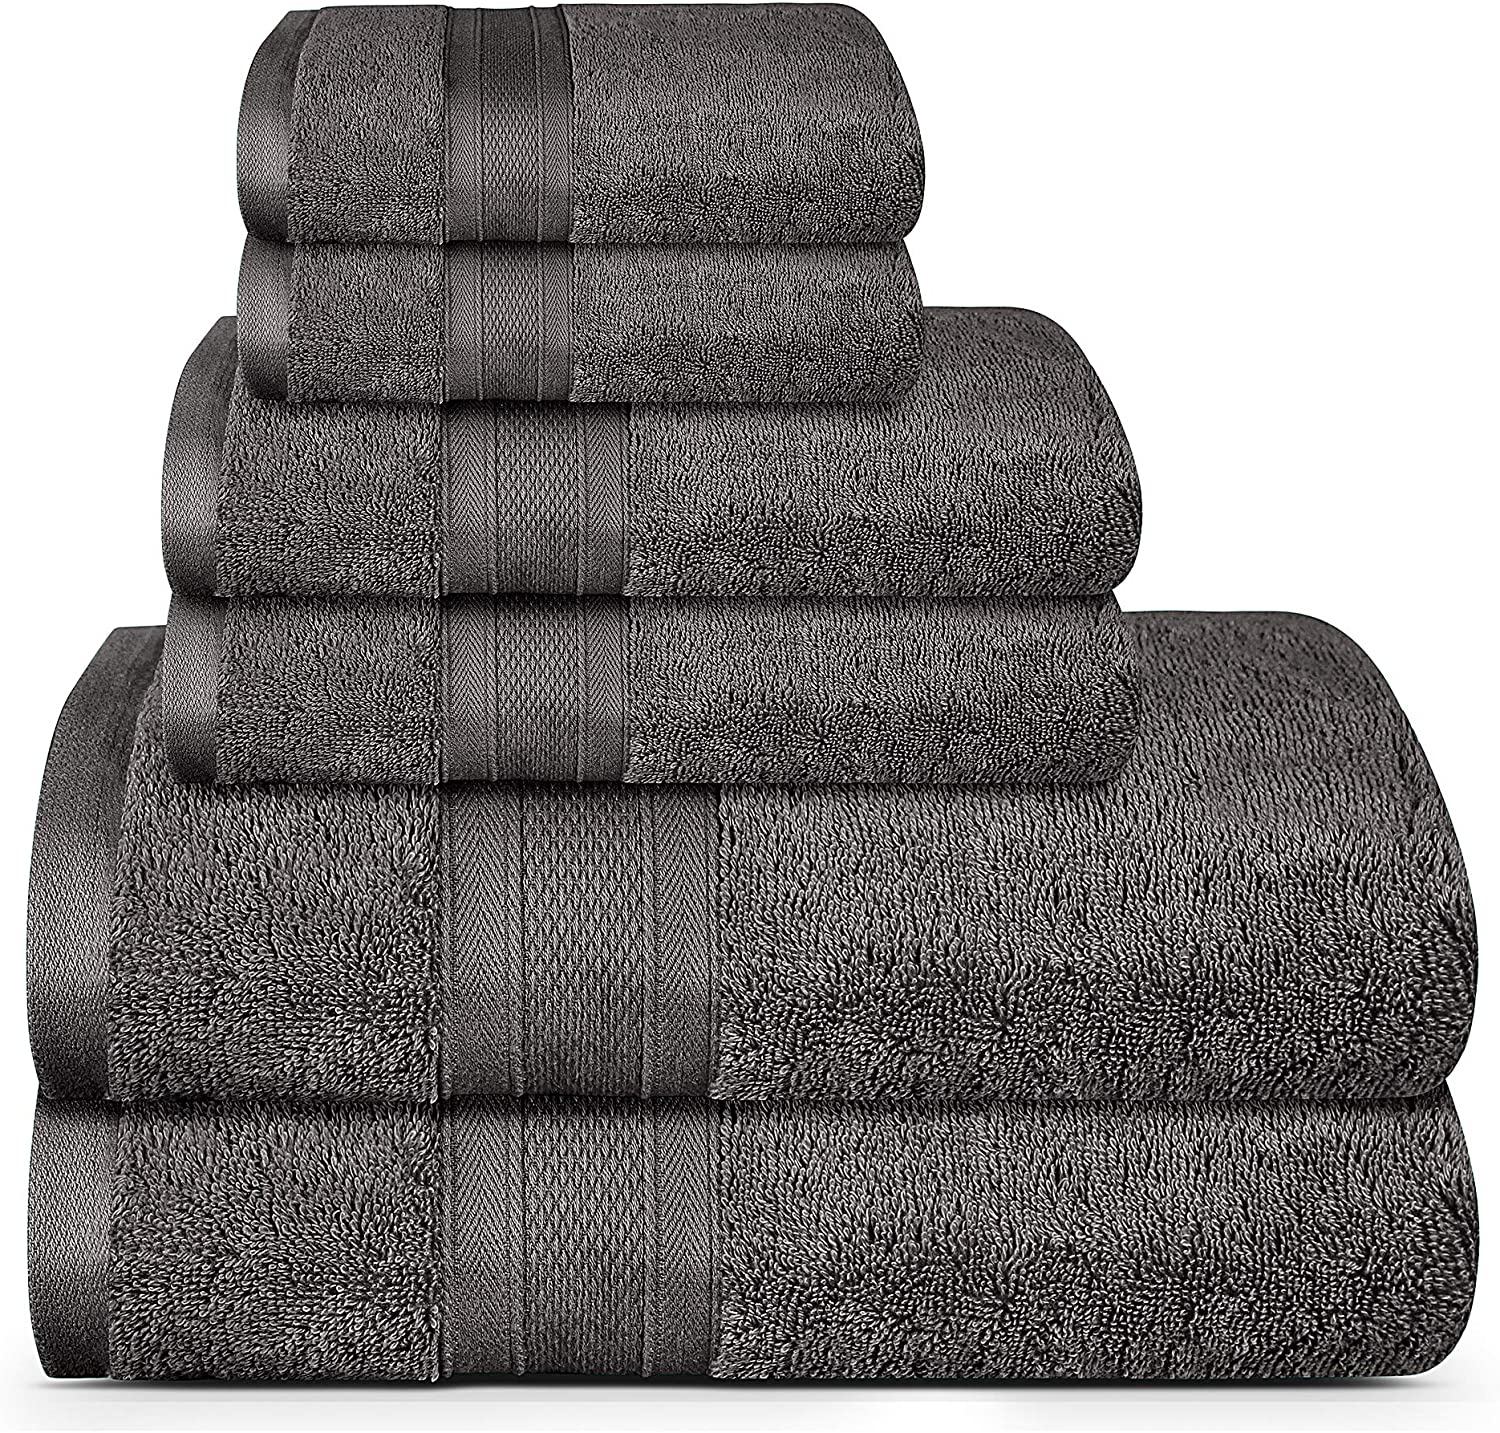 TRIDENT Soft and Plush, 100% Cotton, Highly Absorbent, Bathroom Towels, Super Soft, 6 Piece Towel Set (2 Bath Towels, 2 Hand Towels, 2 Washcloths), 500 GSM, Charcoal